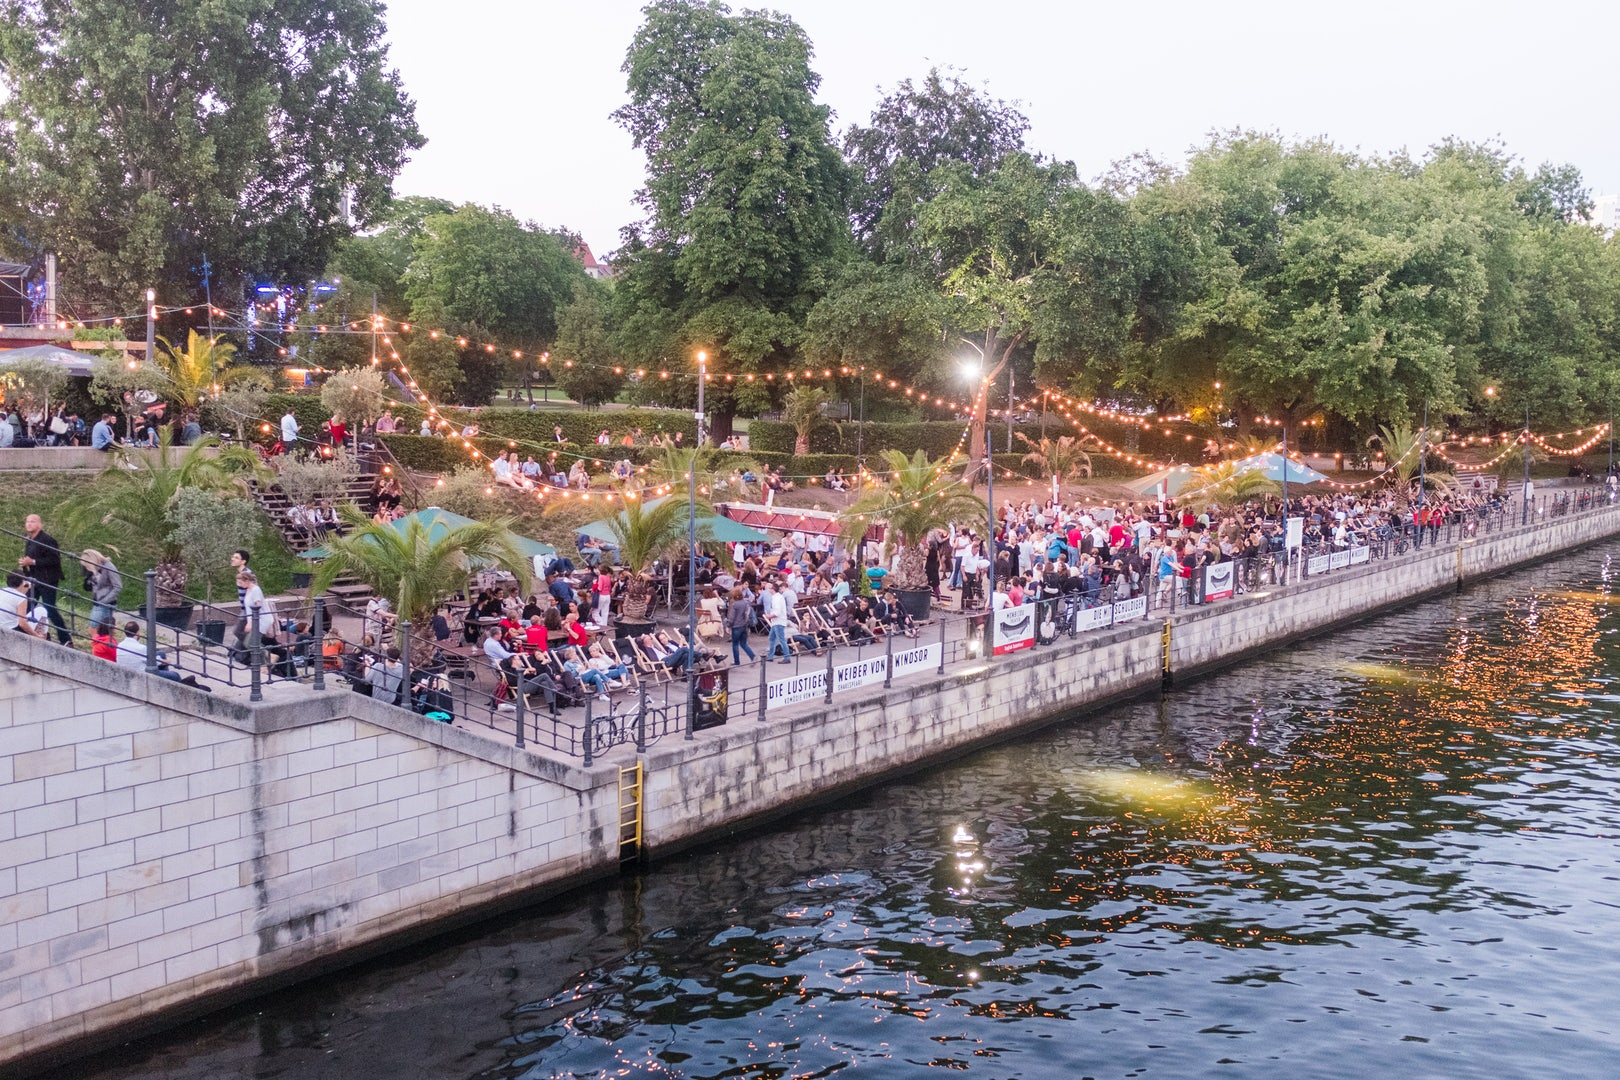 people by the water at Strandbar Mitte